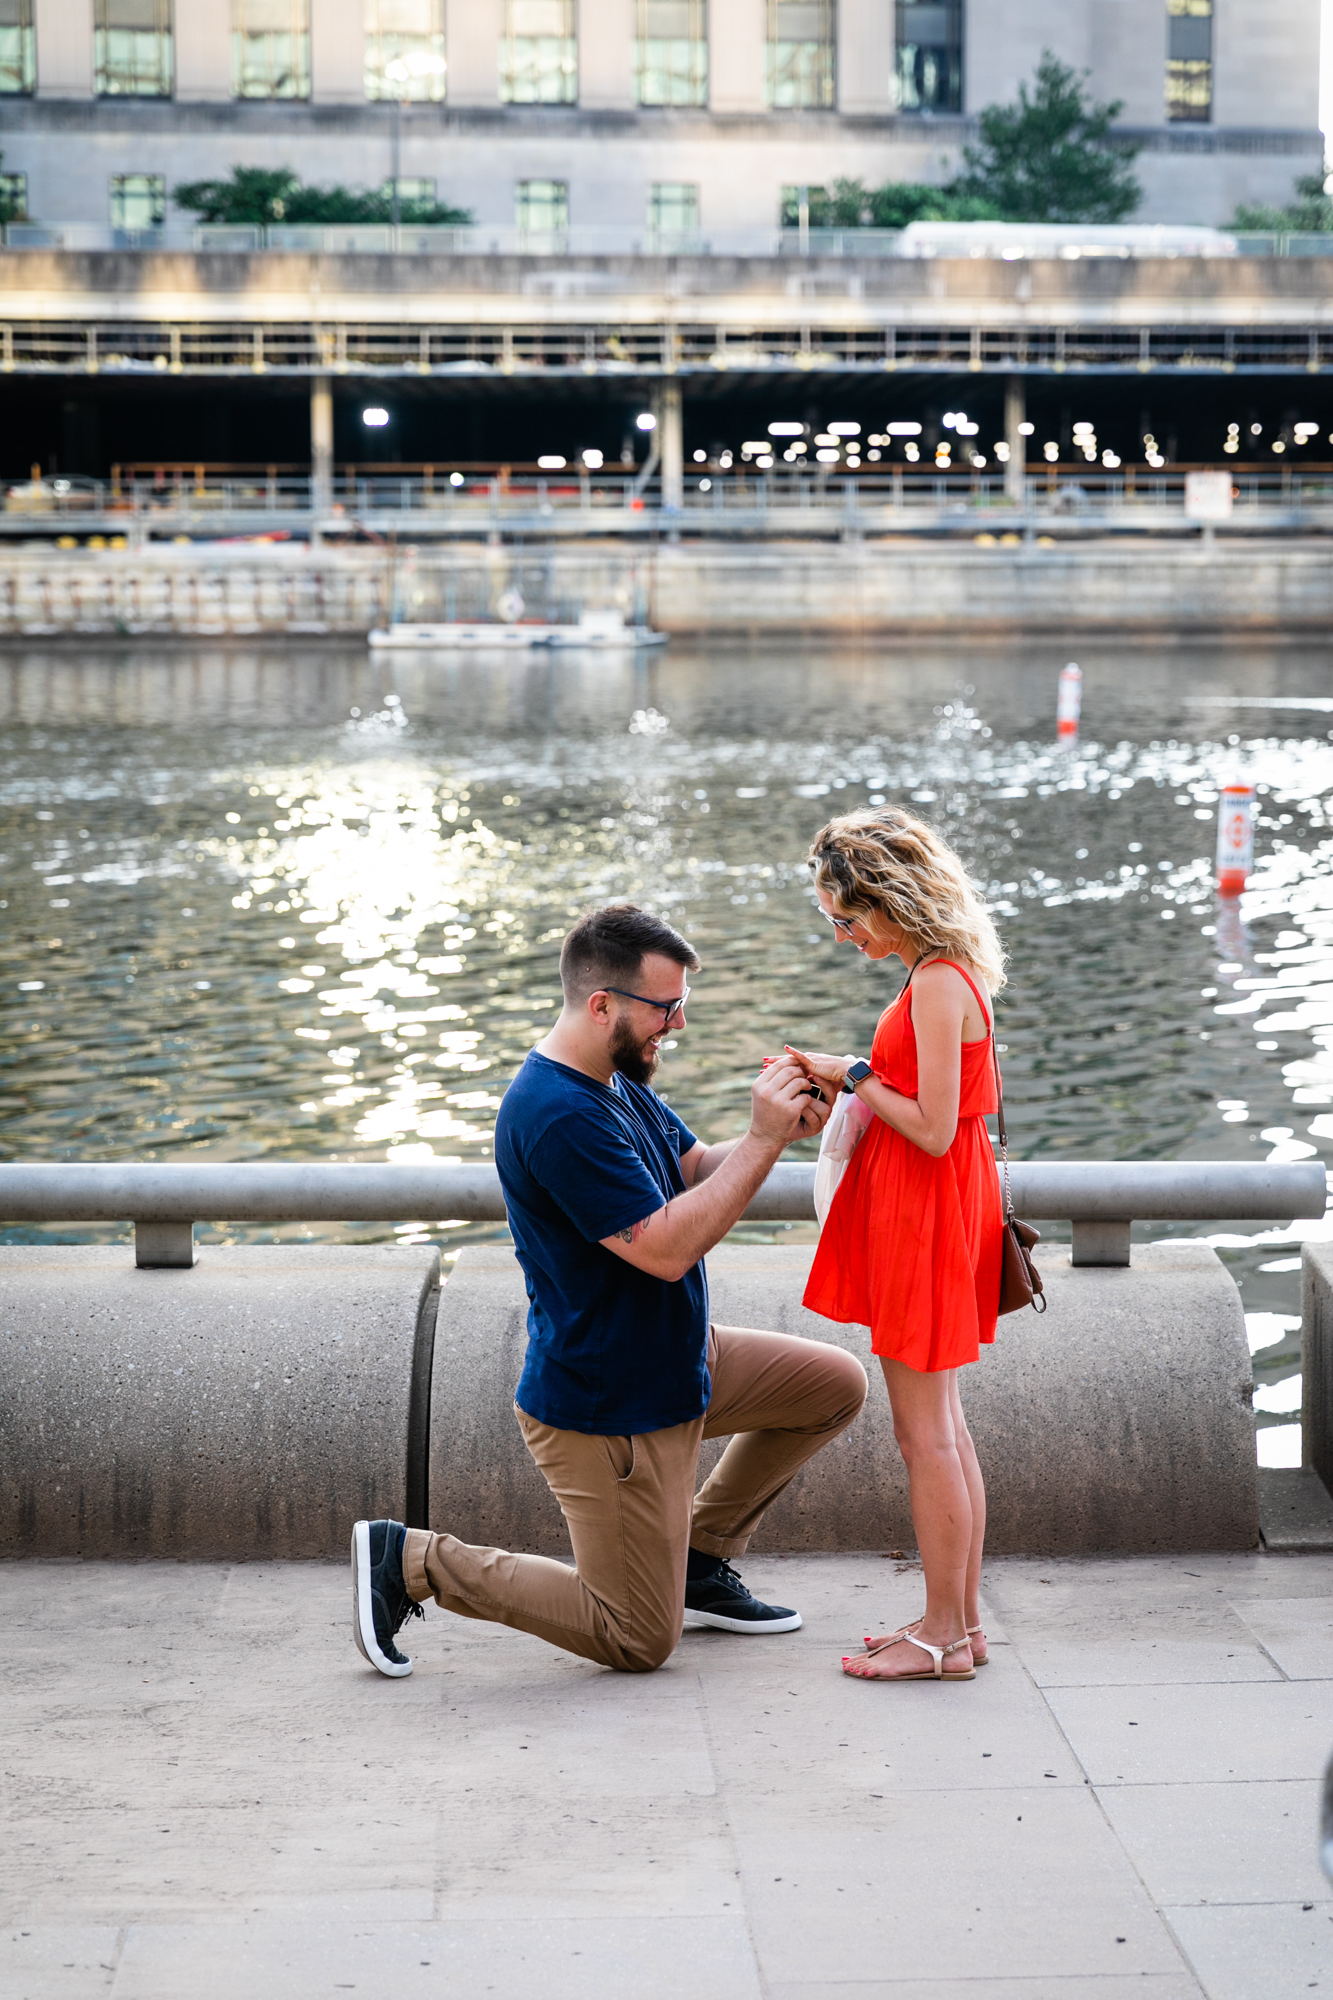 Engagament Photography Philadelphia - LoveStruck Pictures - Schuylkill River Trail-002.jpg